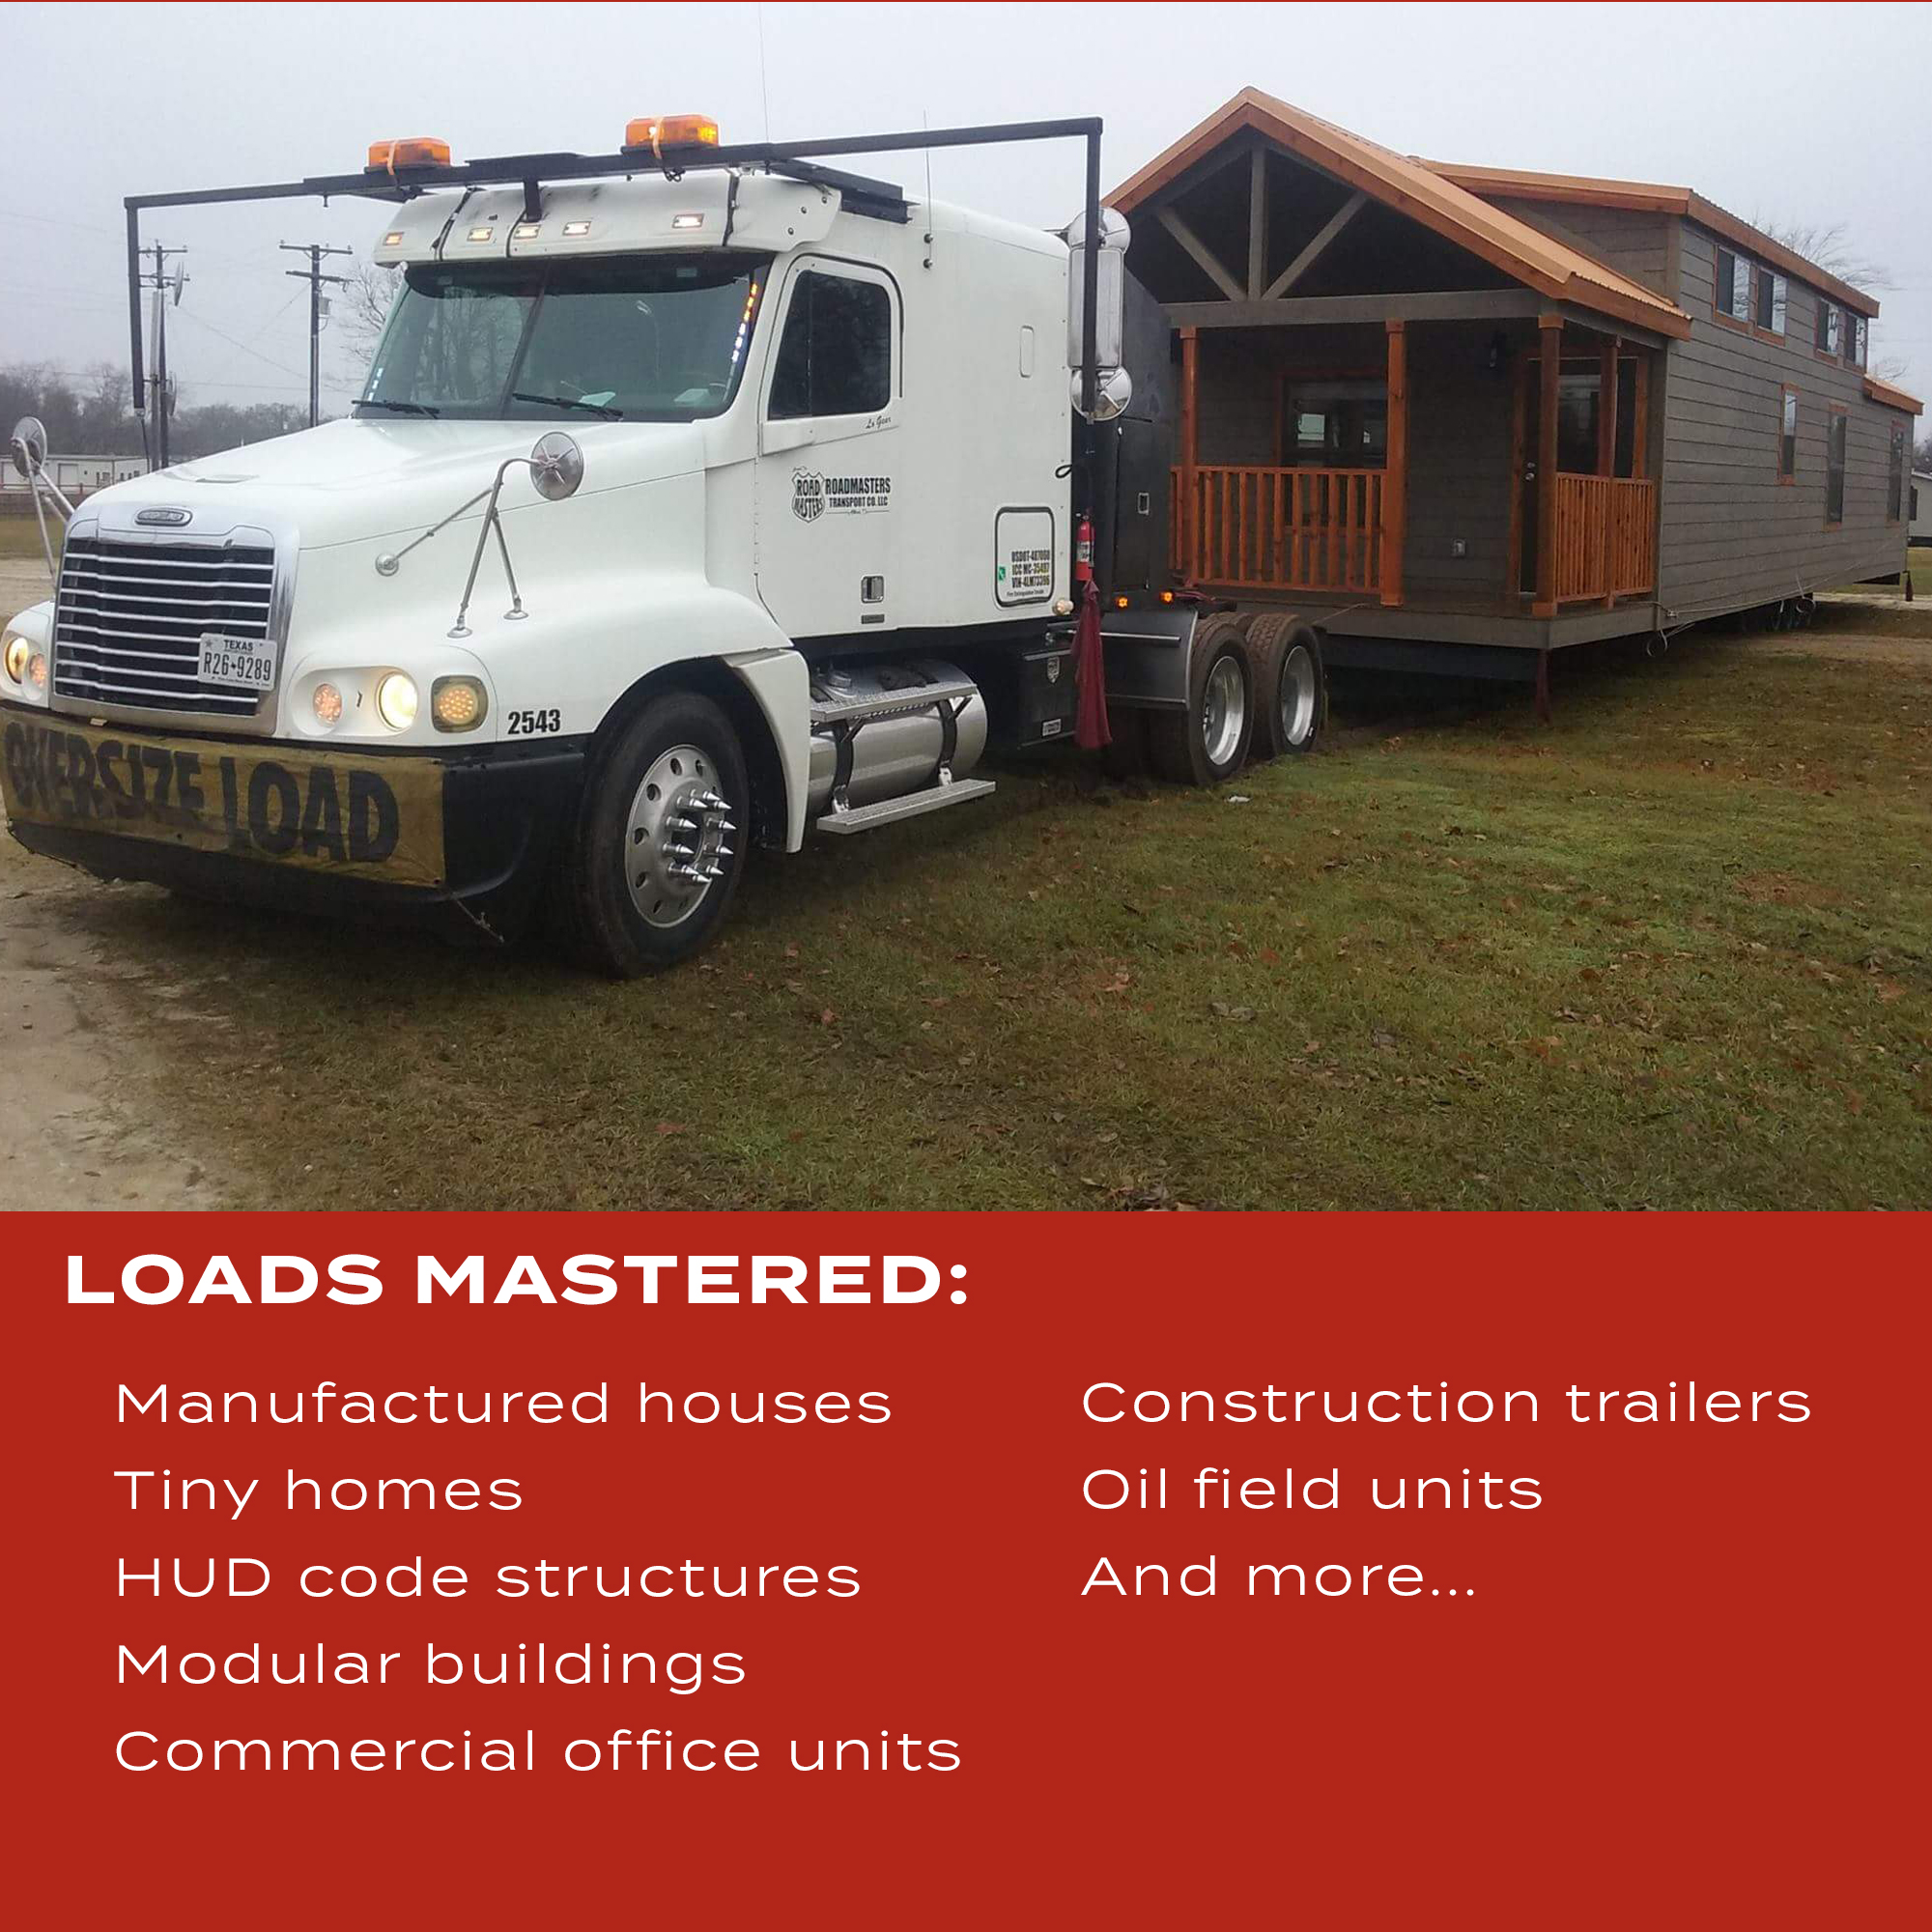 RoadMasters transports the following